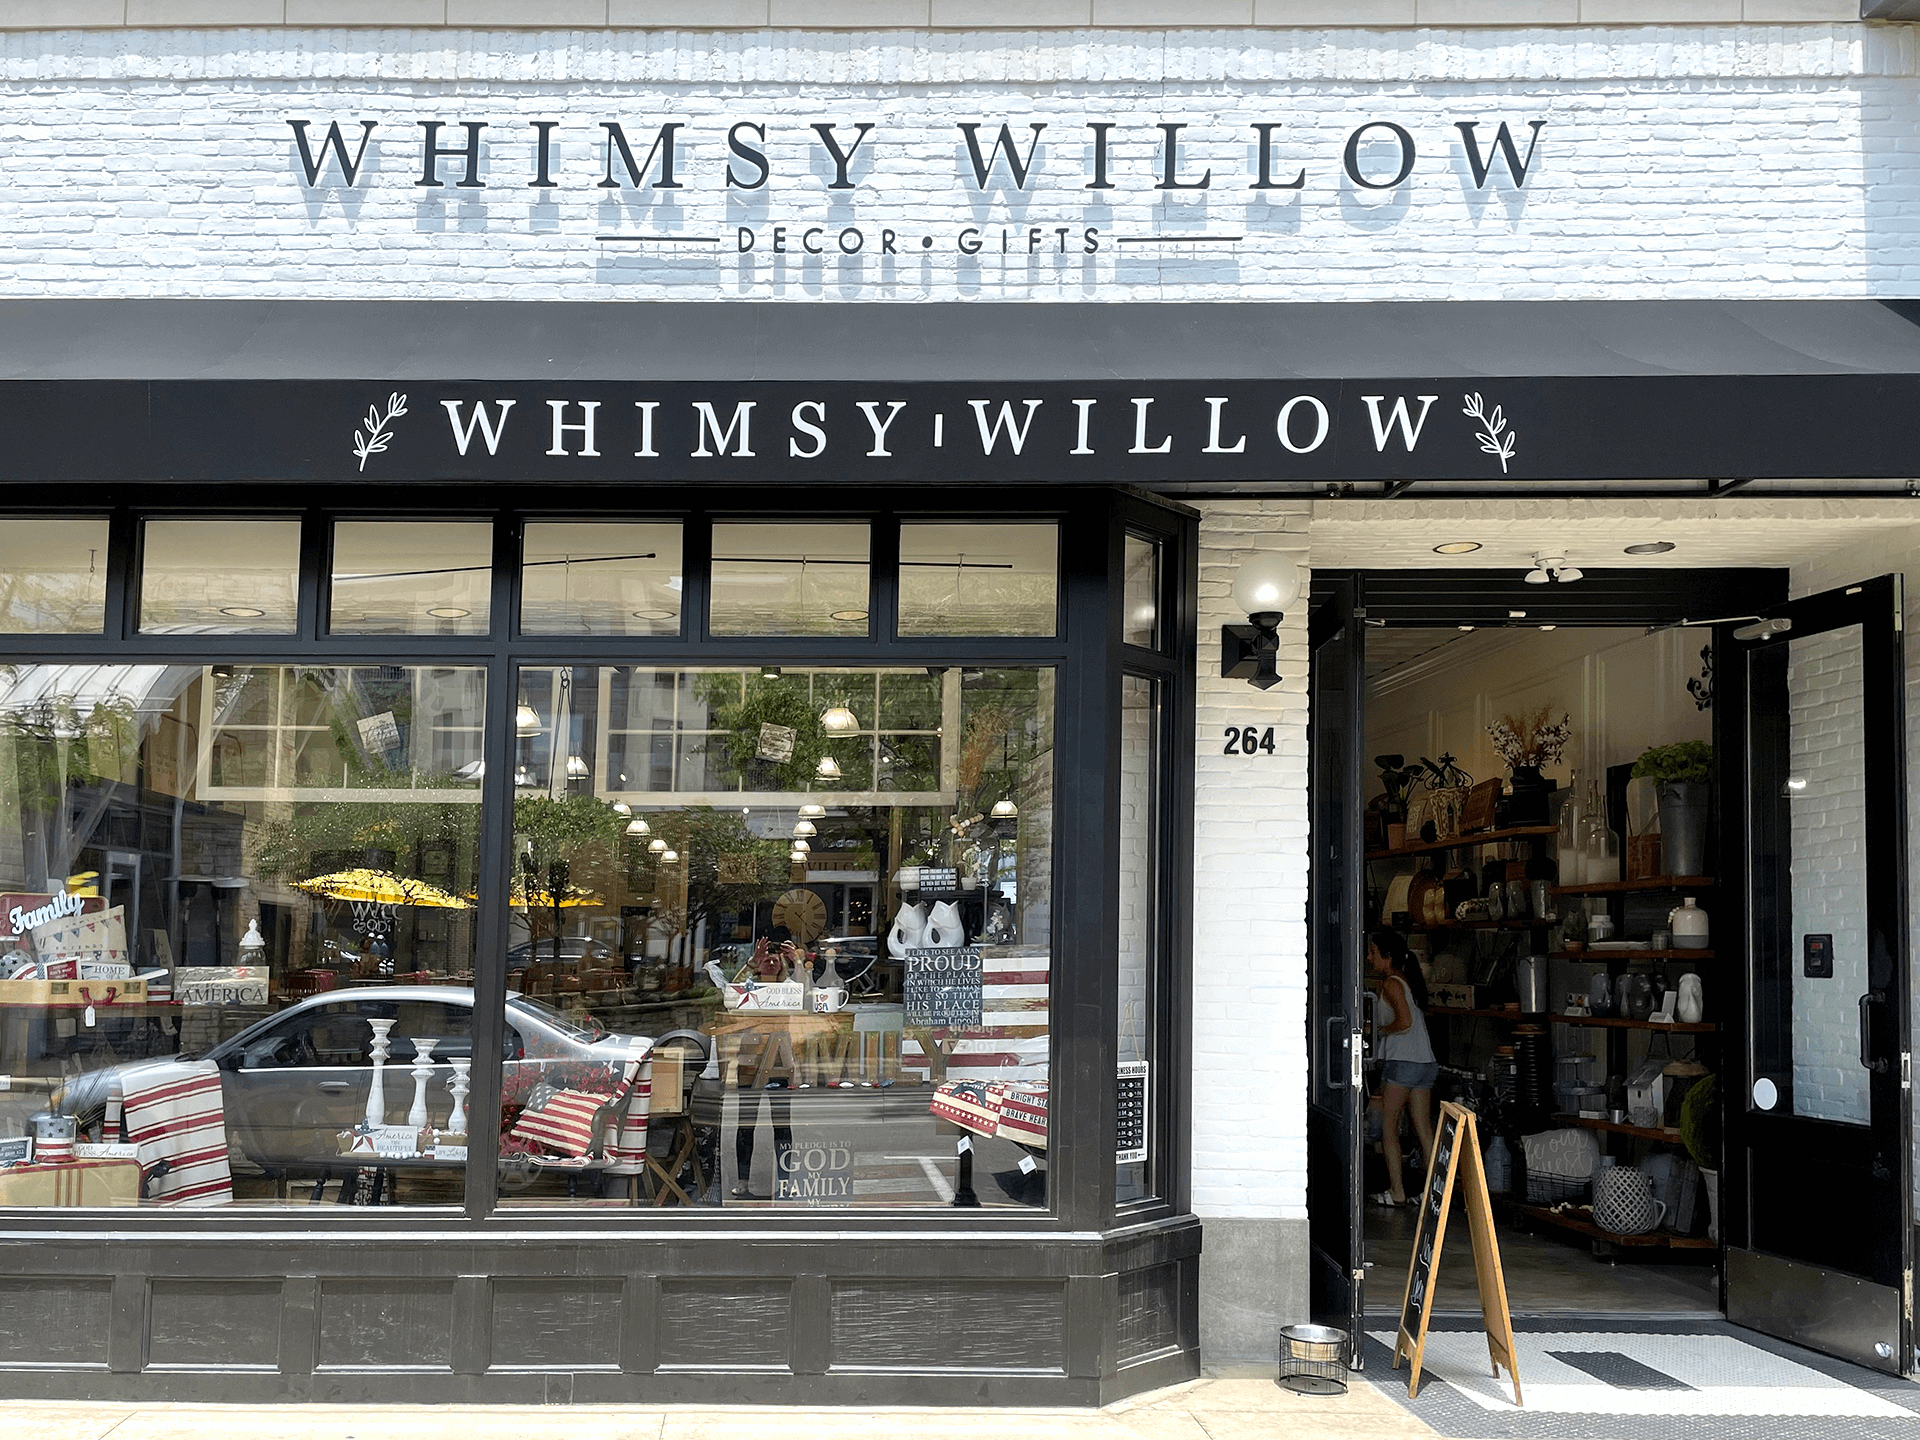 Whimsy Willow